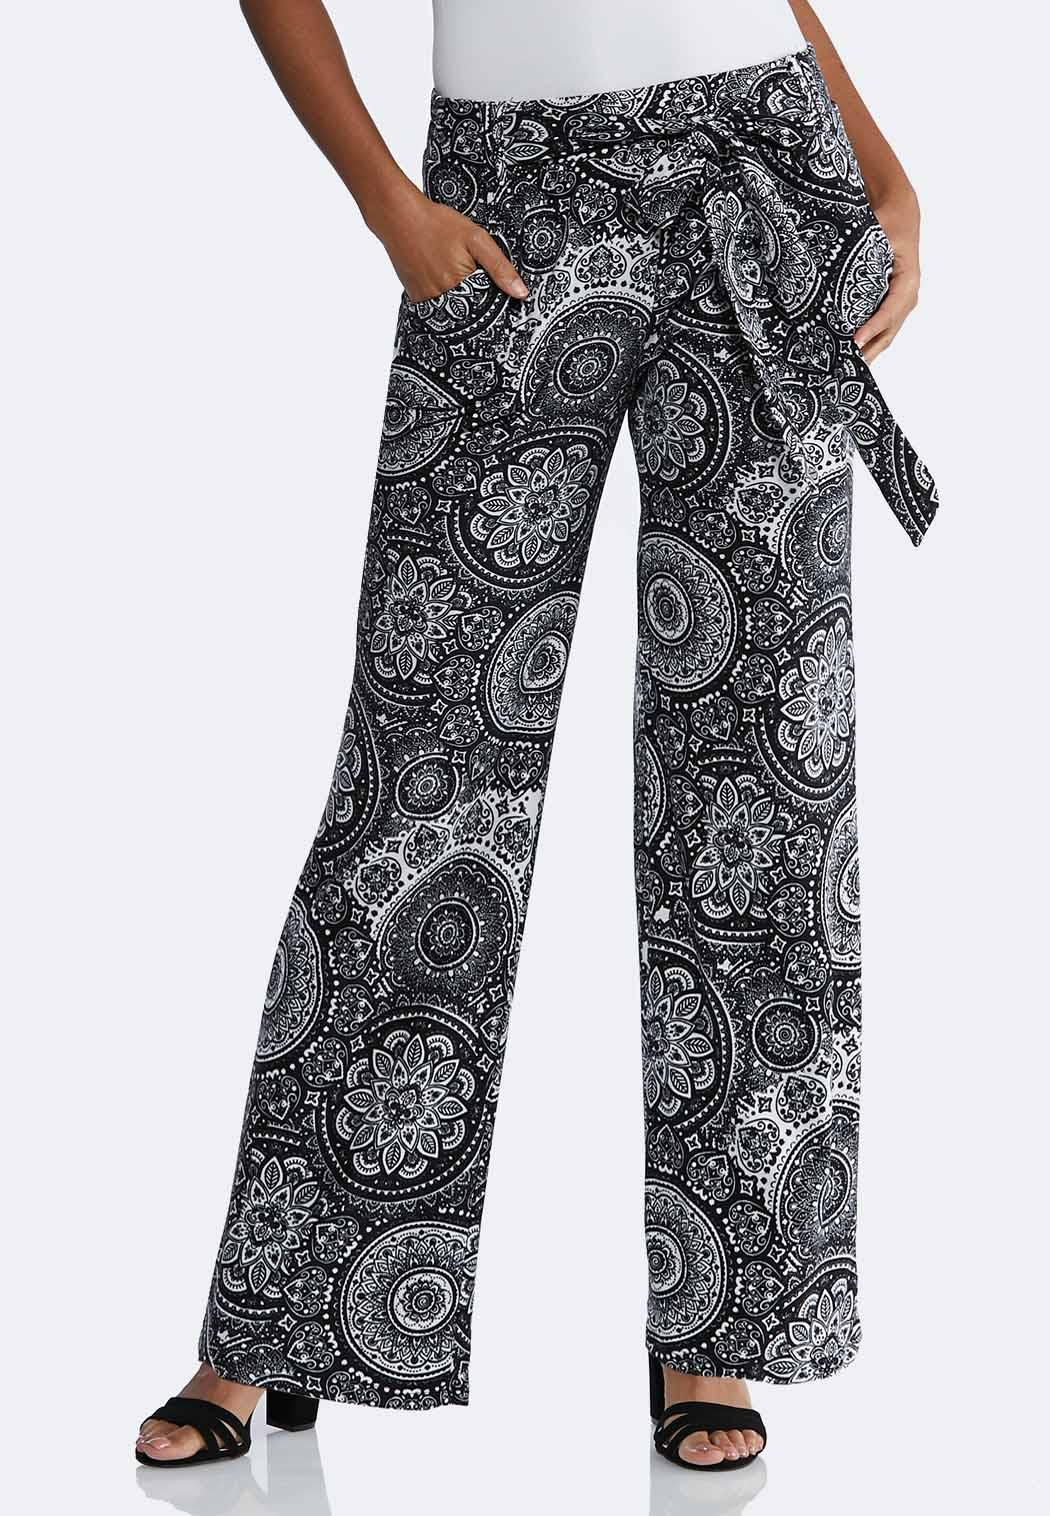 15e3e3b6f58 Medallion Tie Front Palazzo Pants alternate view Medallion Tie Front Palazzo  Pants